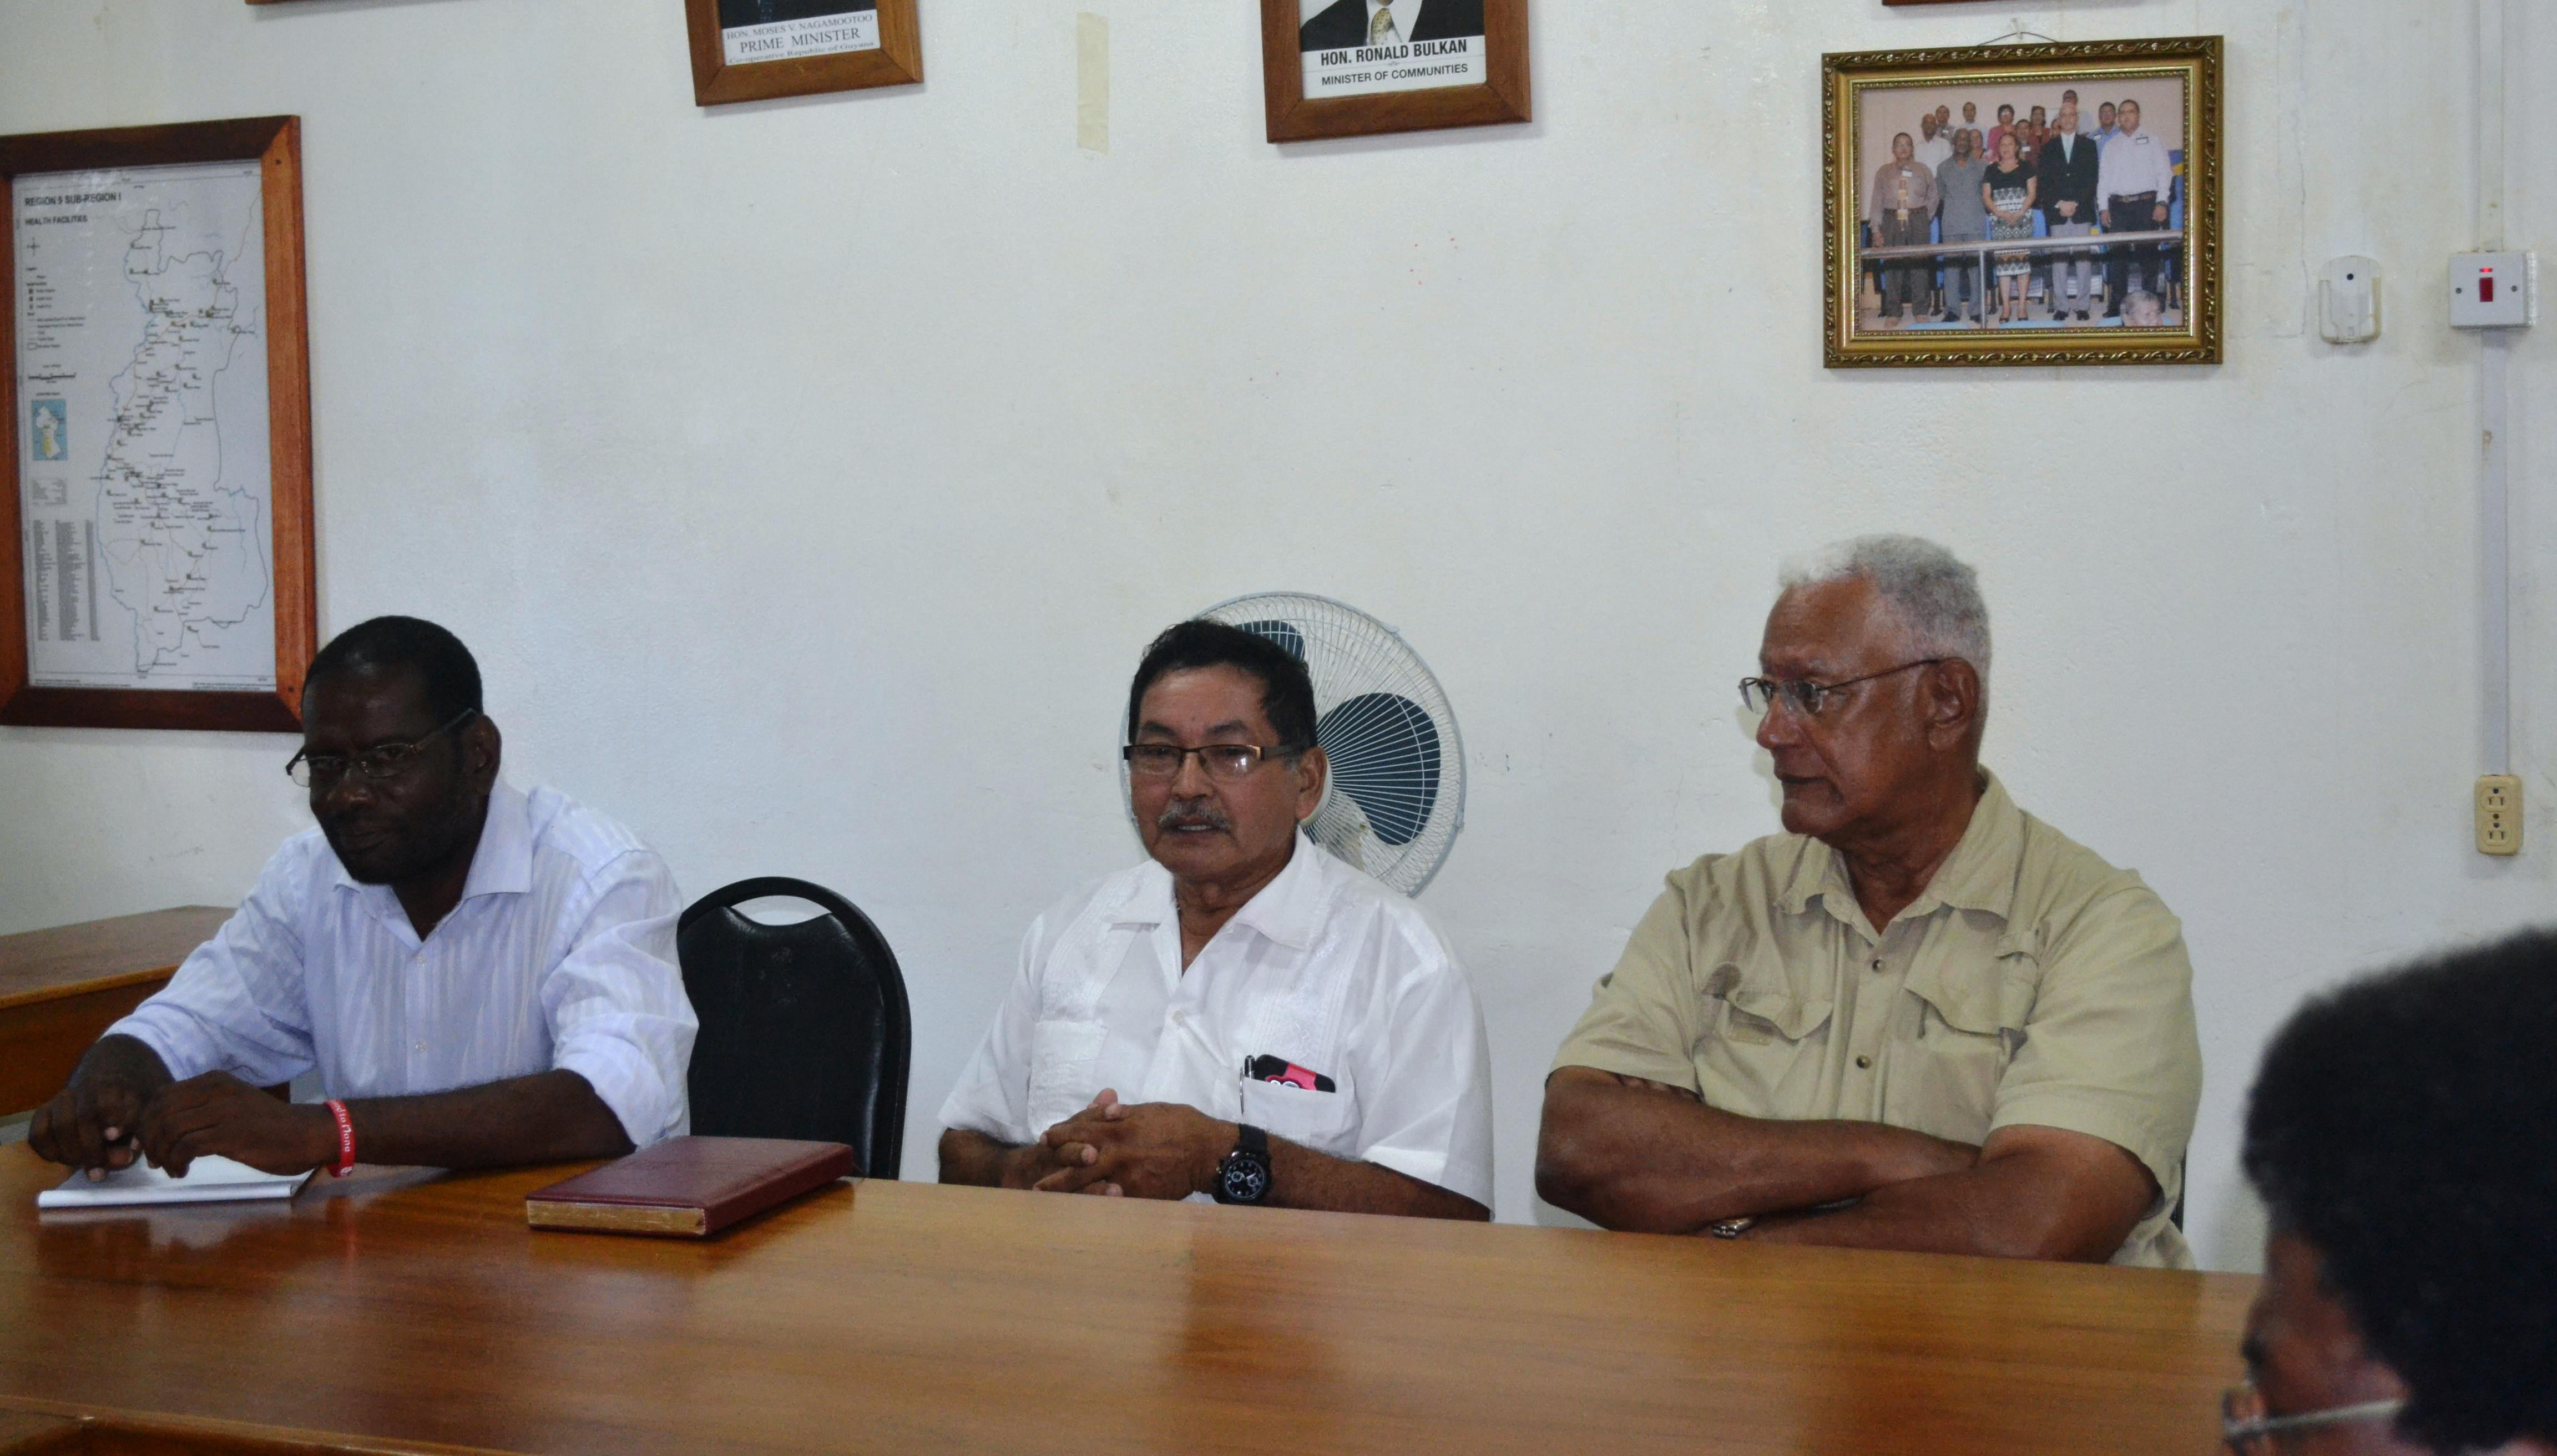 From left- Regon 9 REO Kerwin Ward, Regional Chariman Bryan Allicock and Agriculture Minister, Noel Holder during the meeting